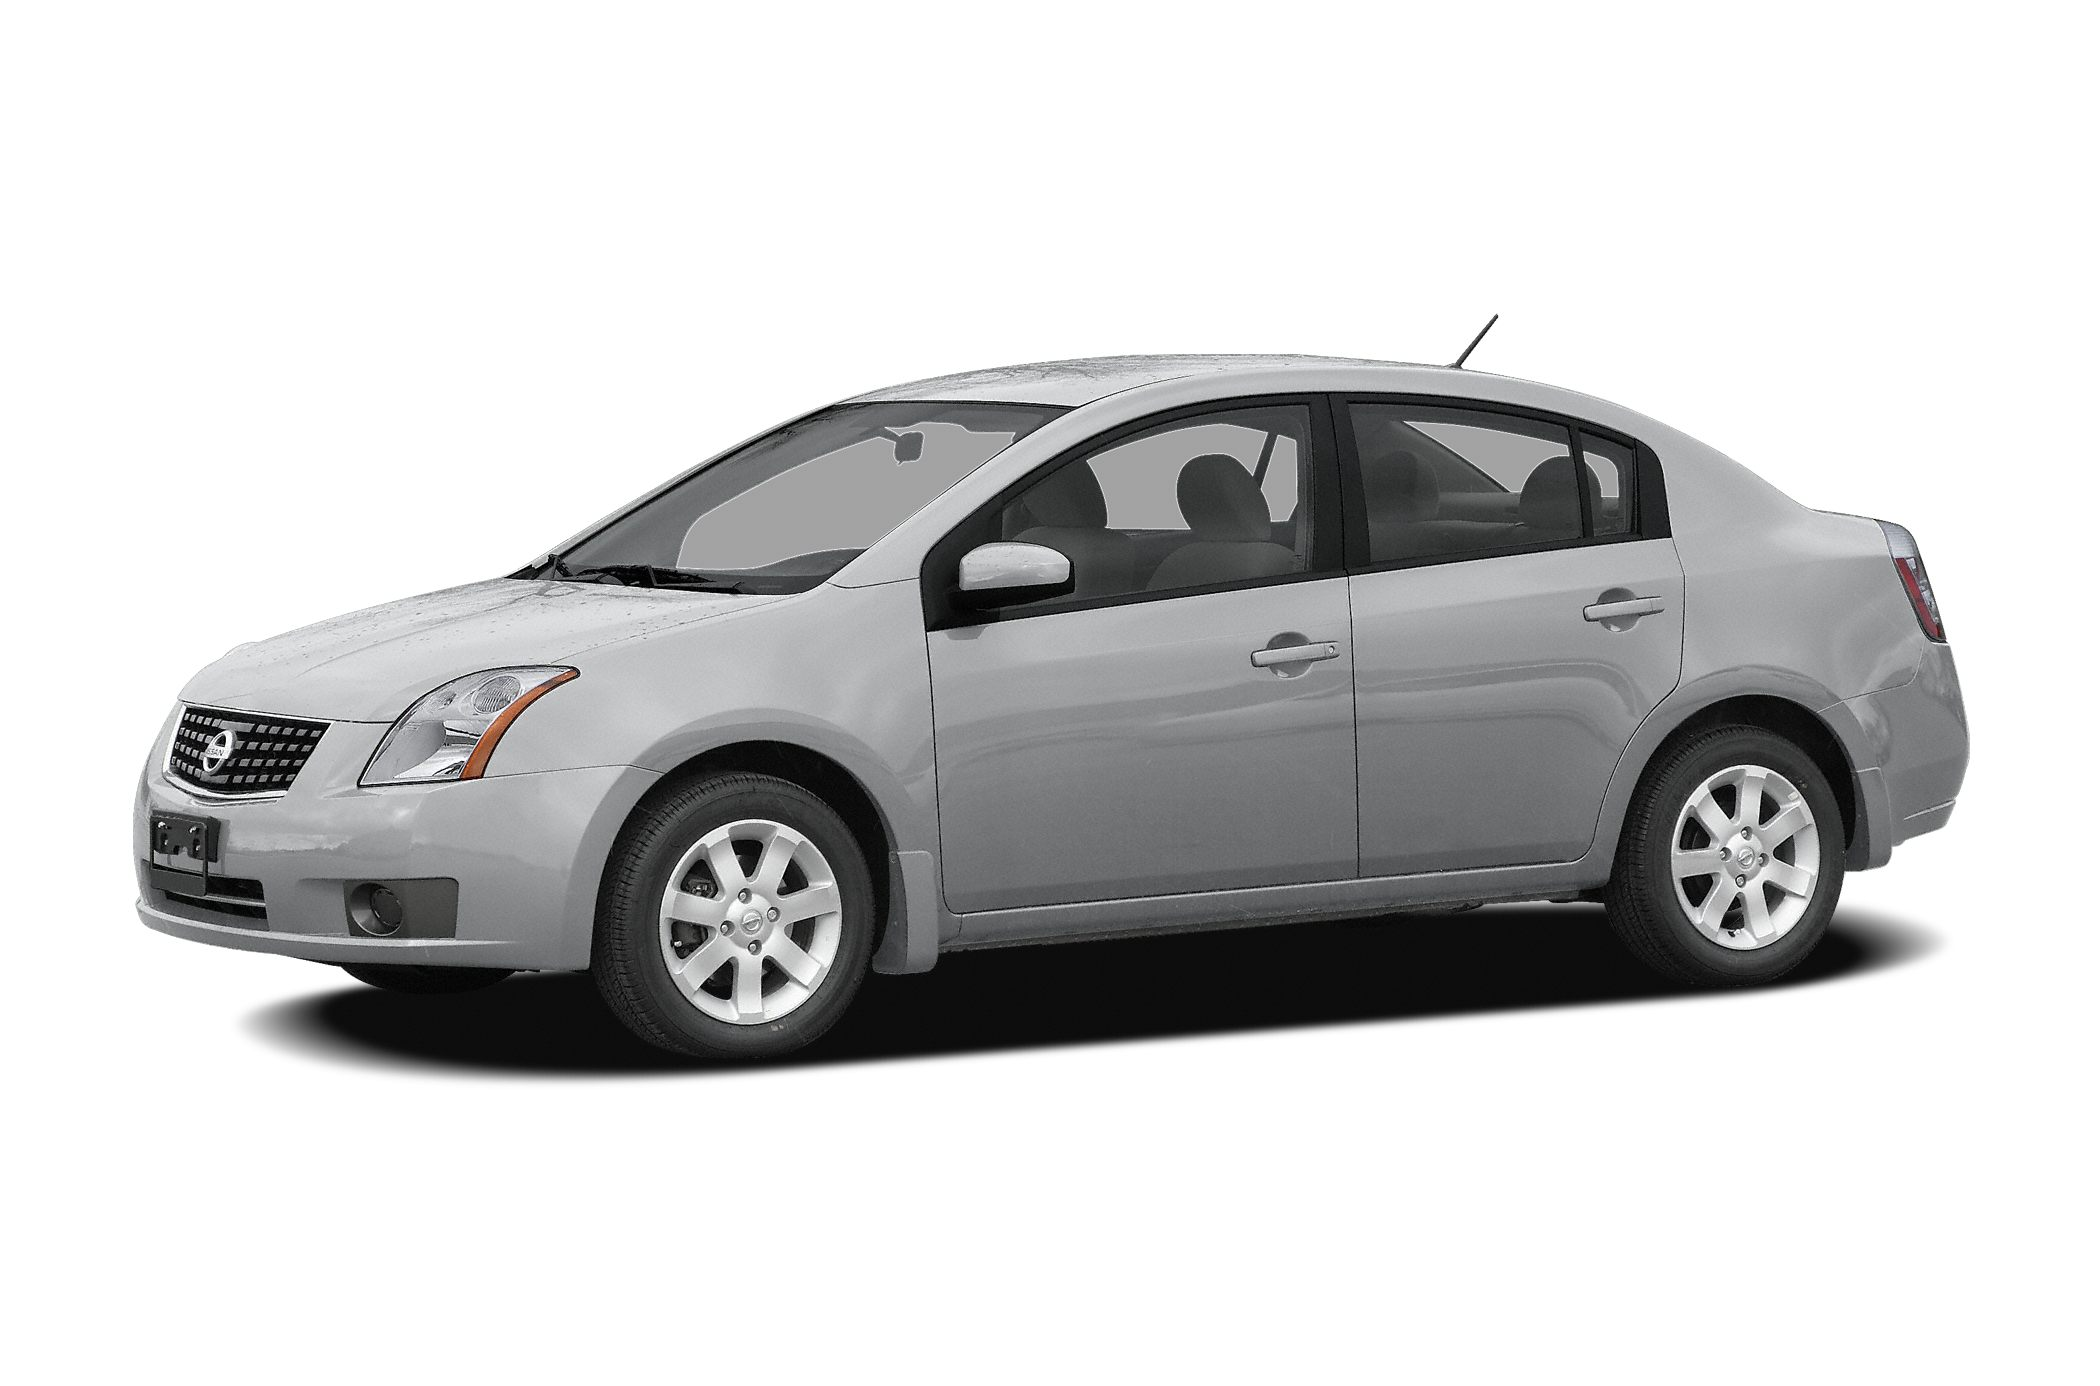 2008 Nissan Sentra 20 S CVT with Xtronic Wow What a sweetheart My My My What a dealThis gr